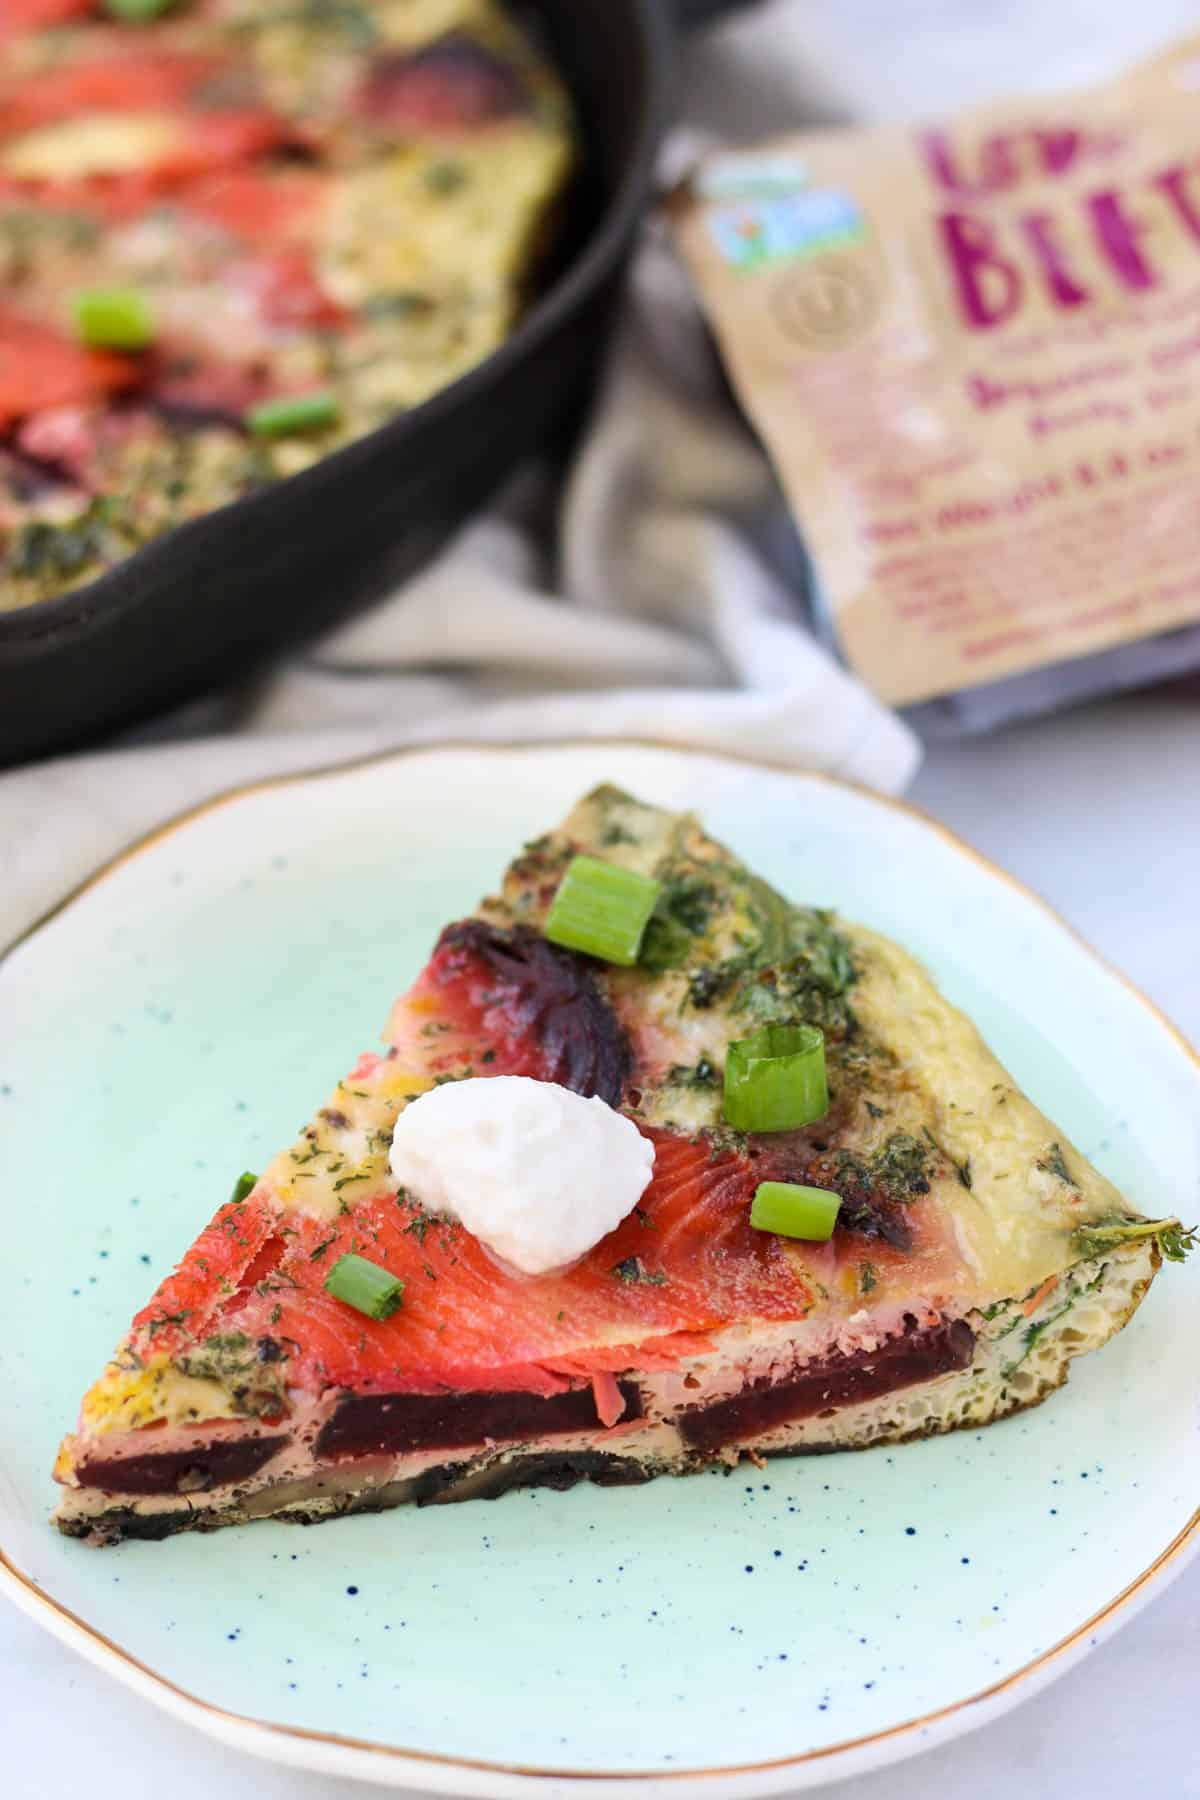 An easy and nutrient packed breakfast, this Beet & Smoked Salmon Frittata calls for one pan, less than 30 minutes, and is paleo, Whole30, and dairy free! - Eat the Gains